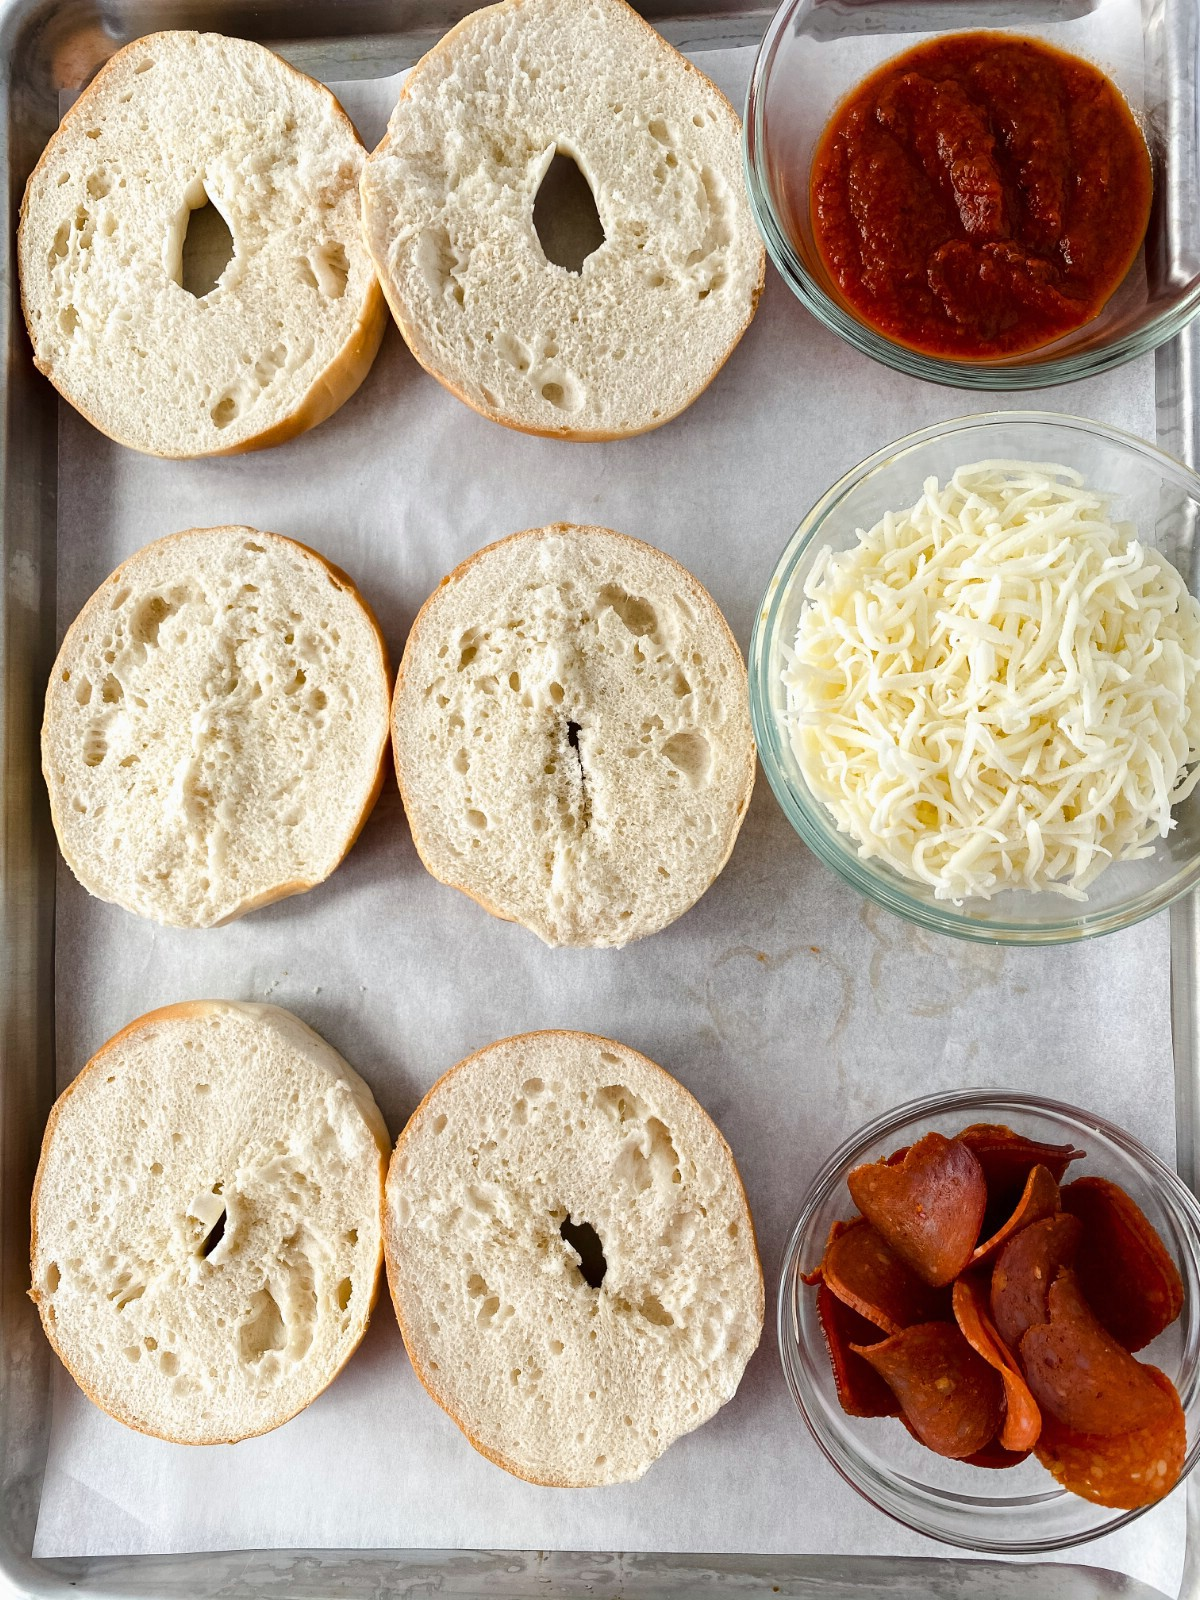 Halved bagels on tray with bowls of sauce and toppings